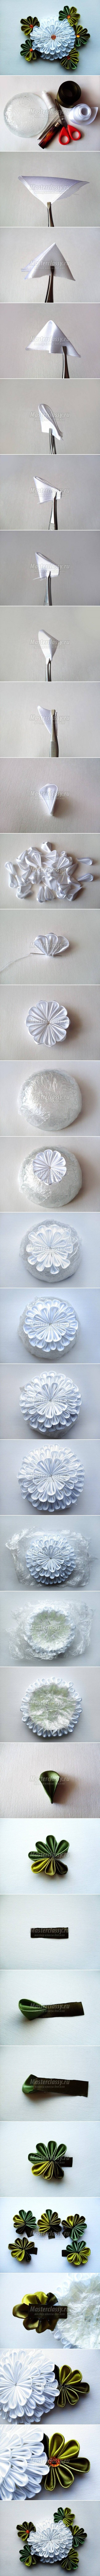 How to make White Chrysanthemum Flower step by step DIY tutorial picture instructions